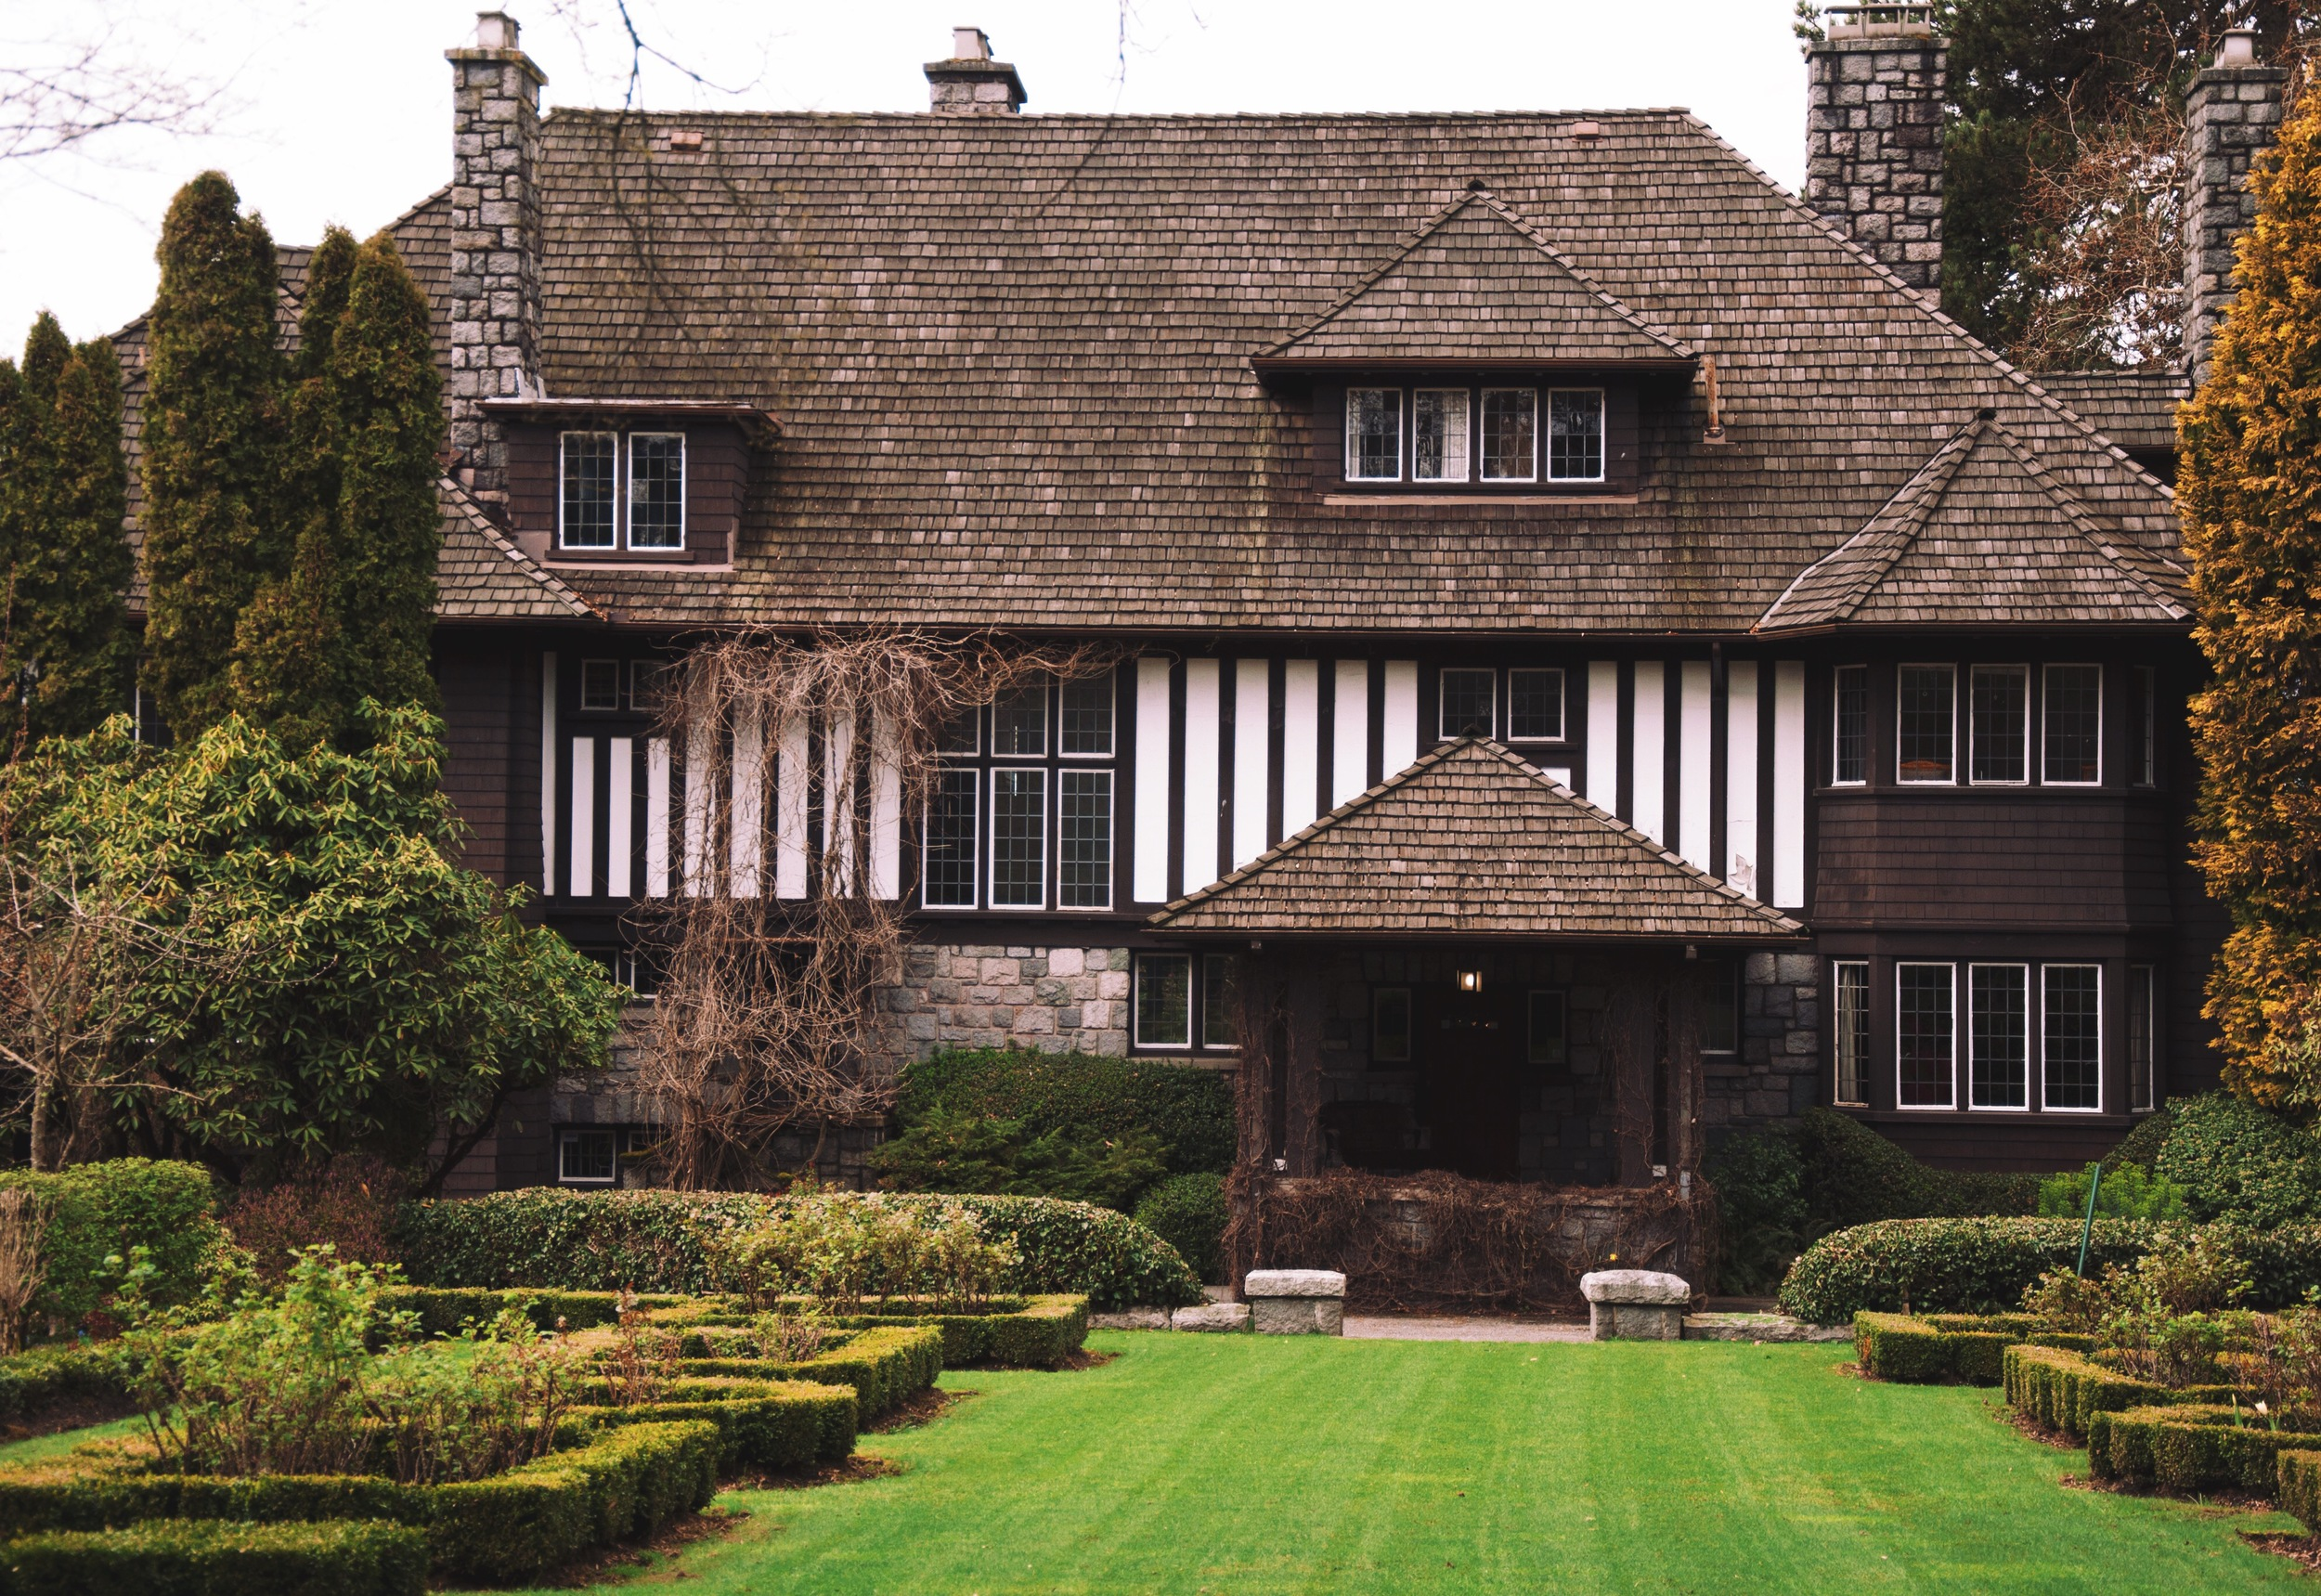 SHAUGHNESSY CRESCENT